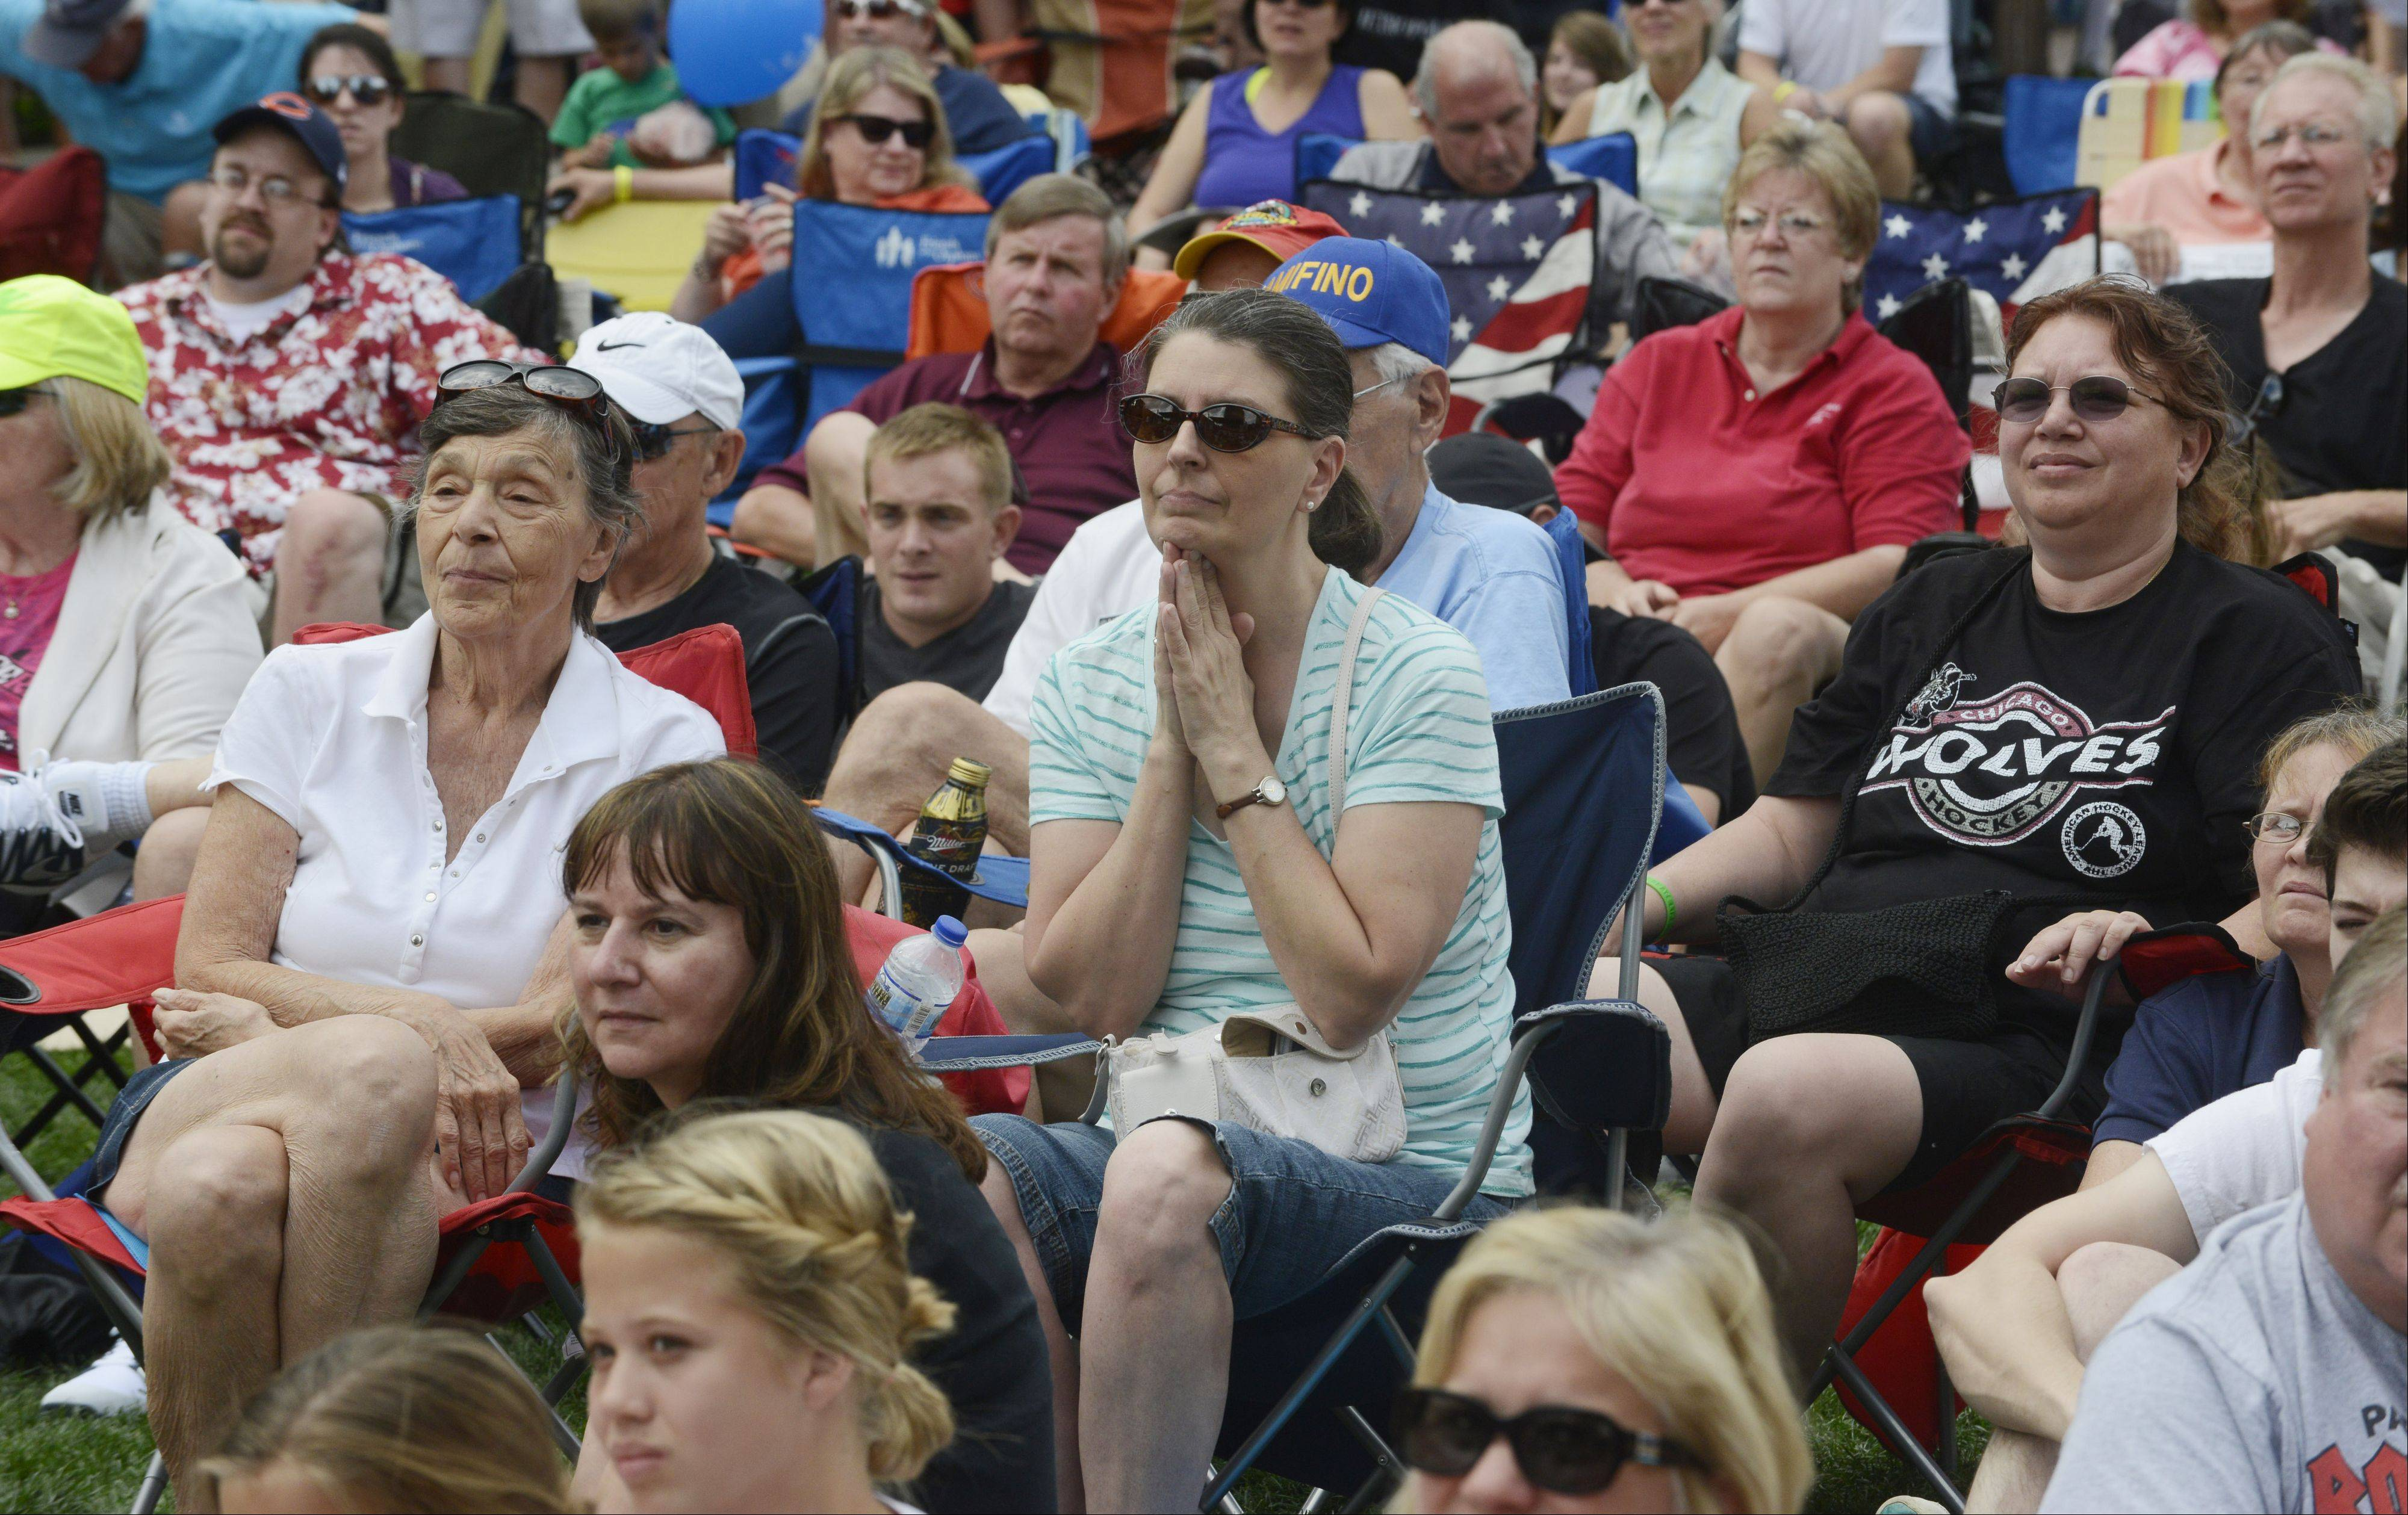 Members of the audience watch as the winner of Suburban Chicago's Got Talent is announced in Arlington Heights Saturday.